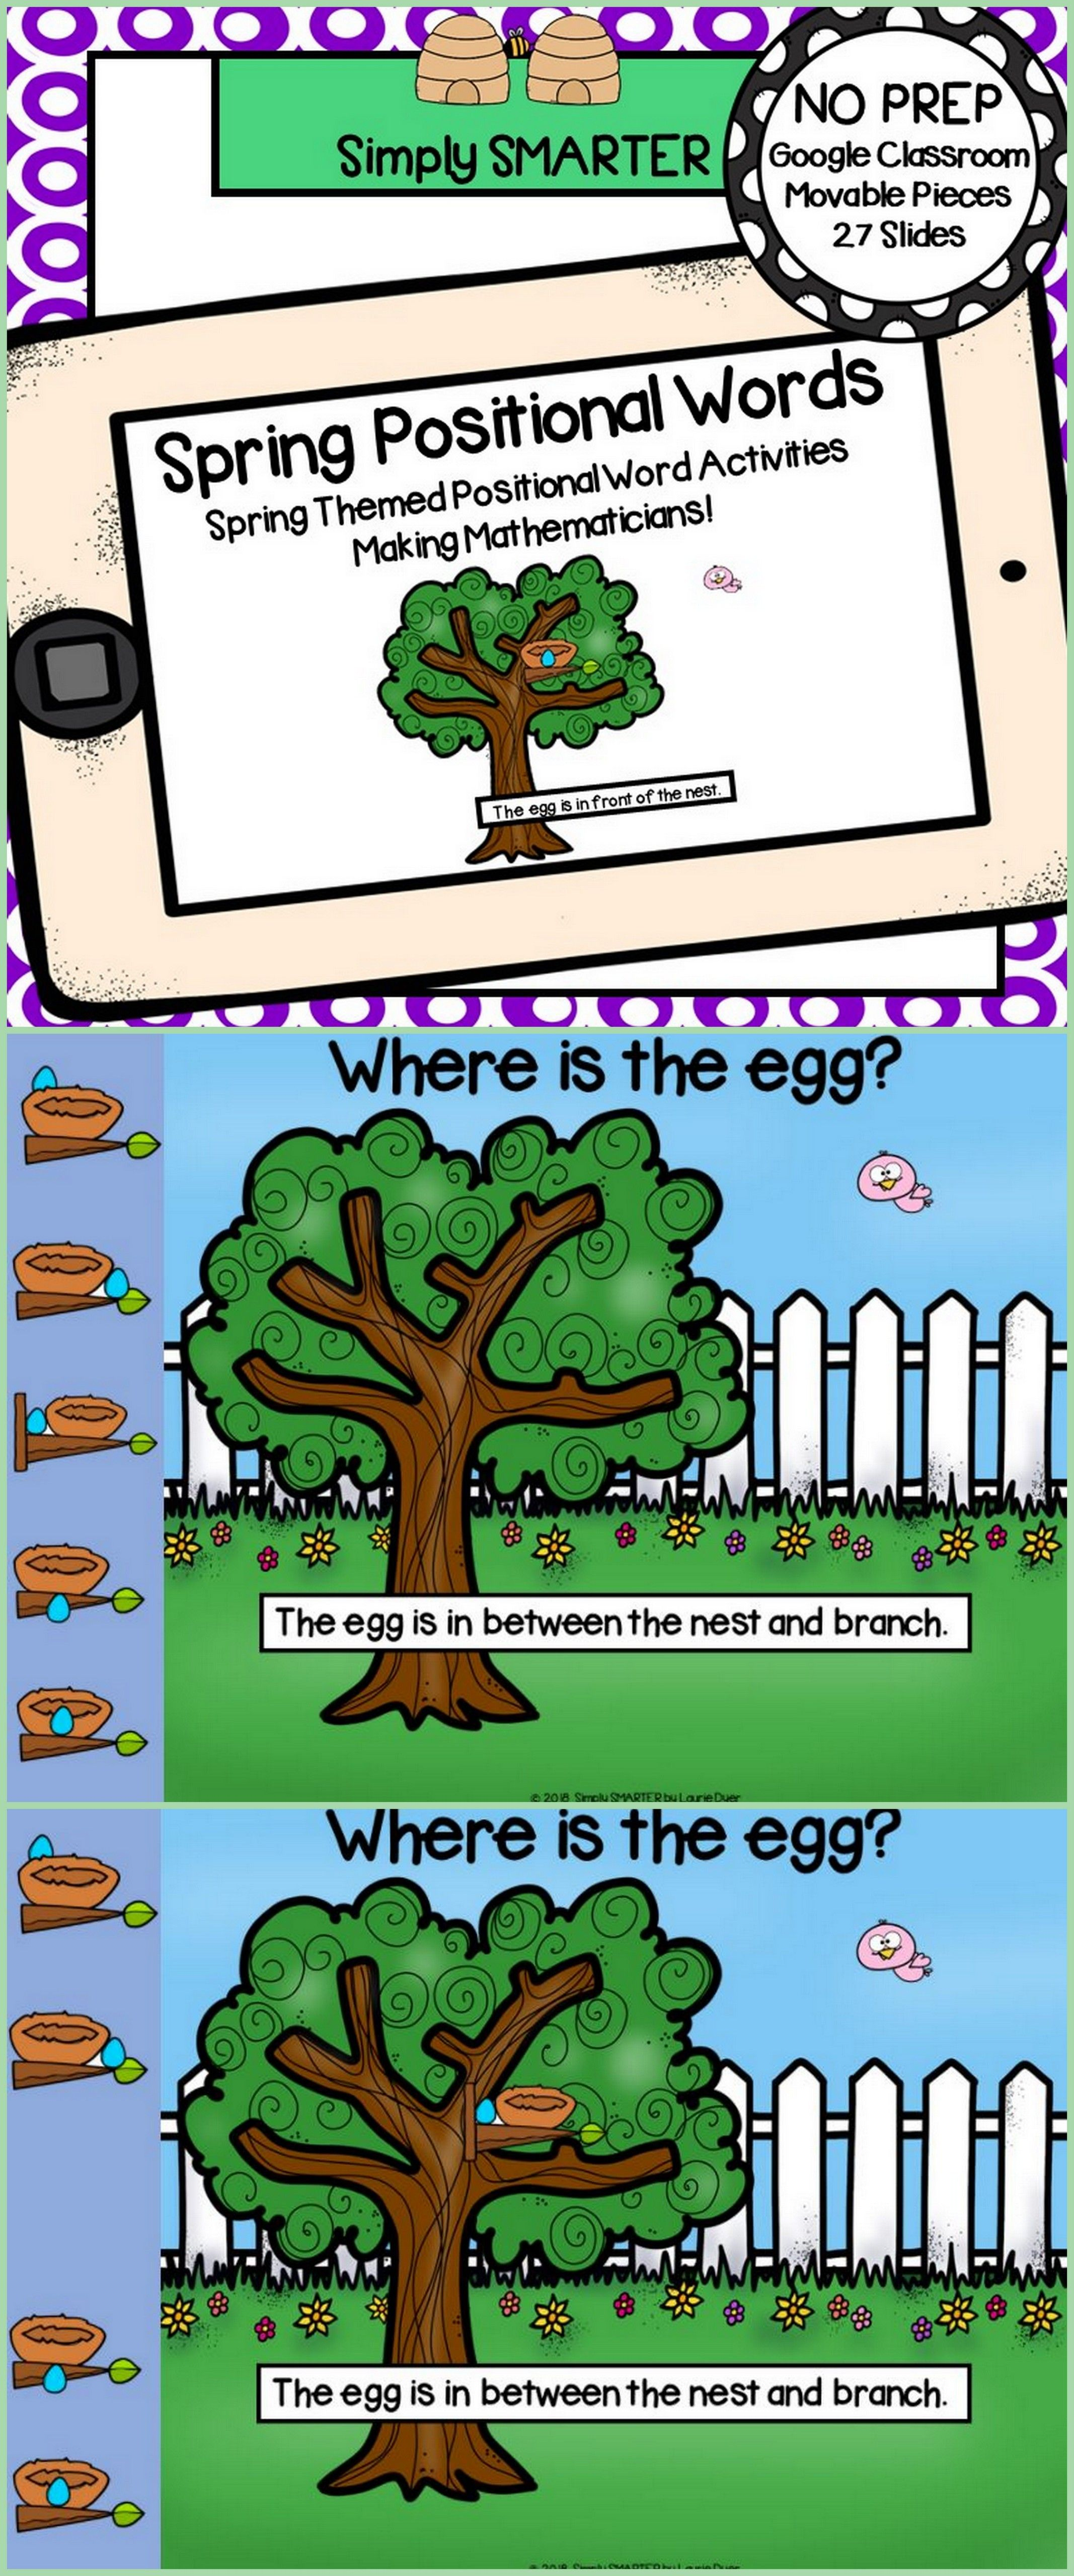 Spring Themed Positional Word Activities For